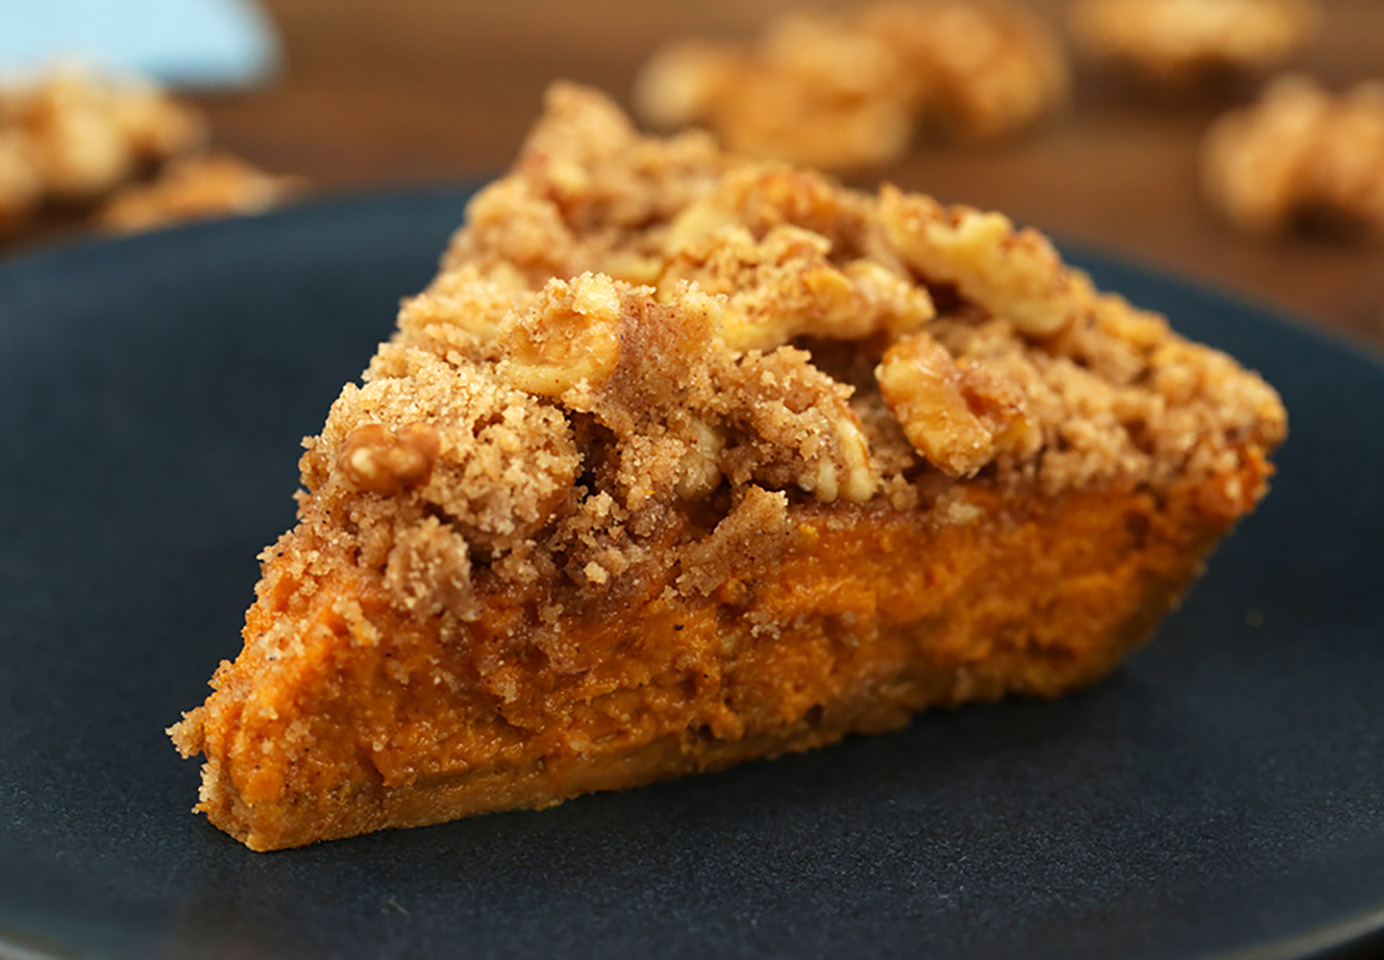 Harvest Walnut Pumpkin Pie Allrecipes